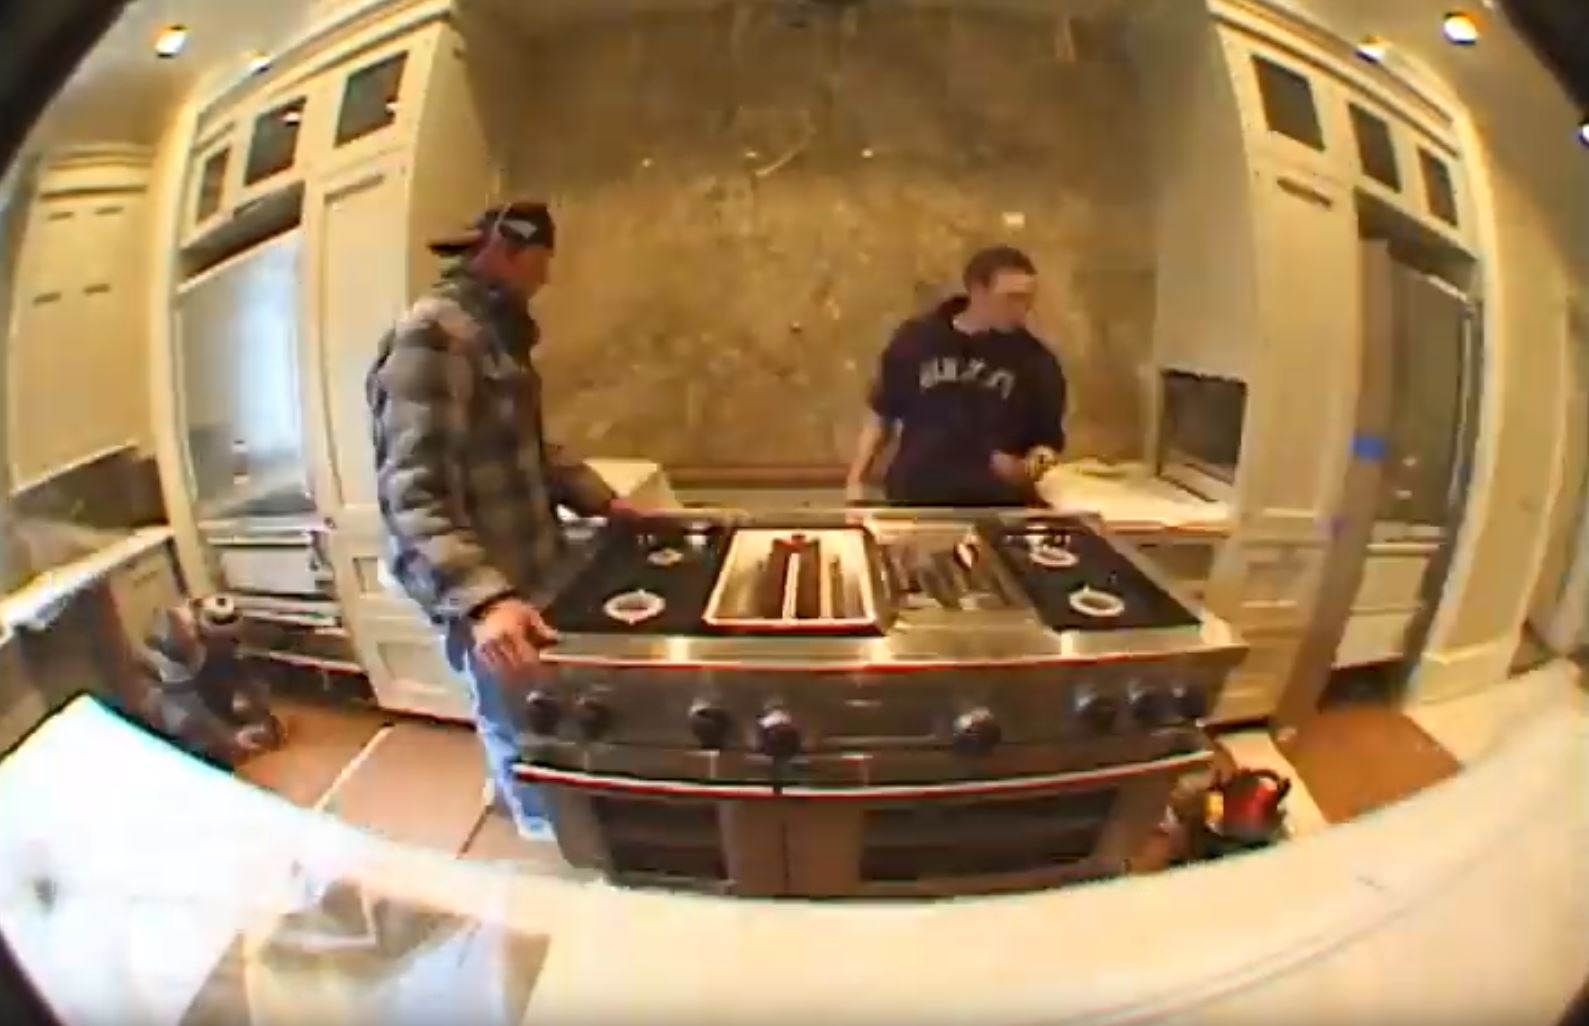 Home for the Holidays Showhouse 2010 Appliance Installation Video